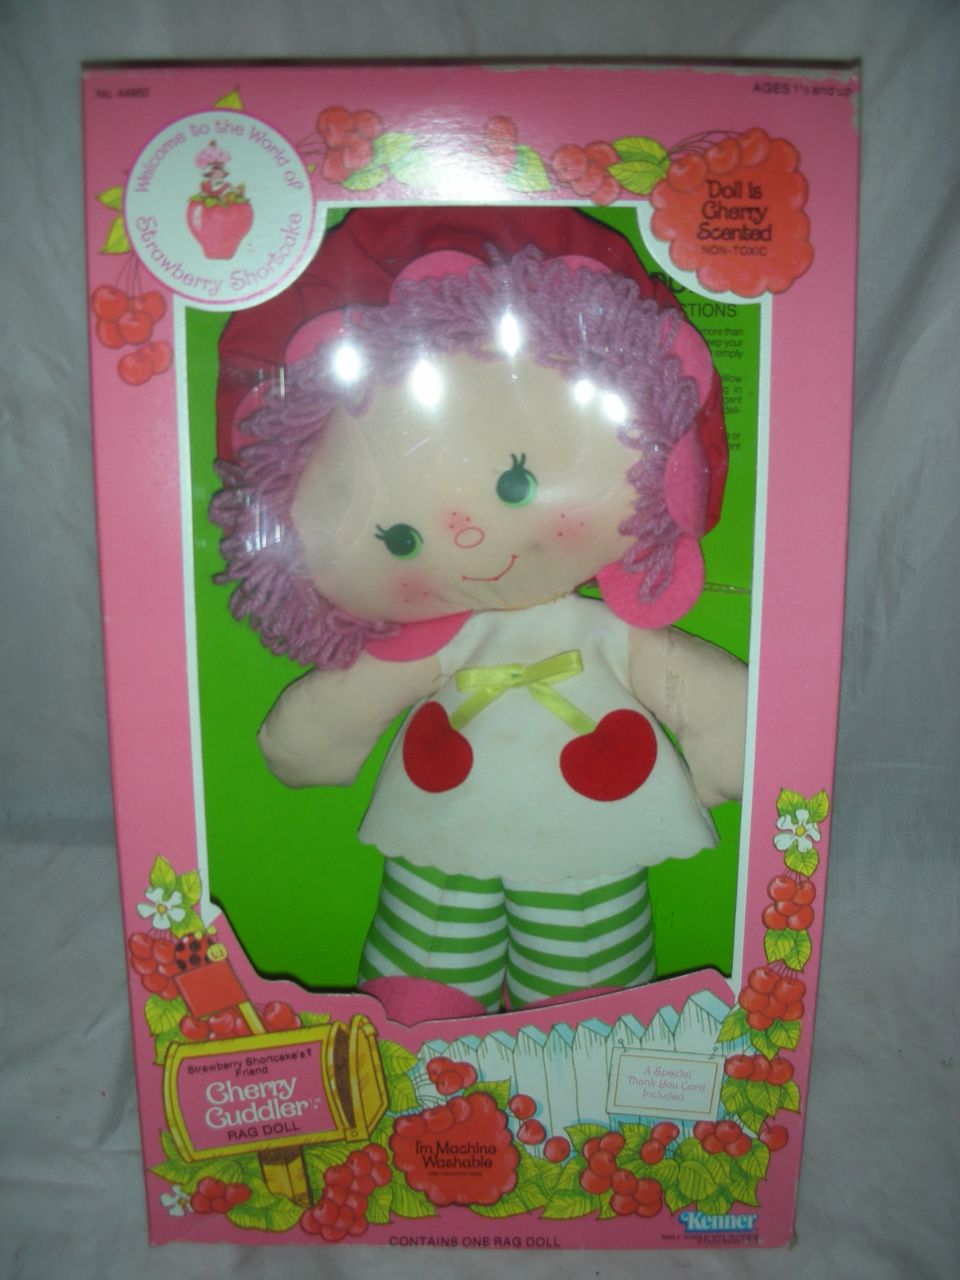 Vintage Strawberry Shortcake Cuddler Rag Doll NRFB